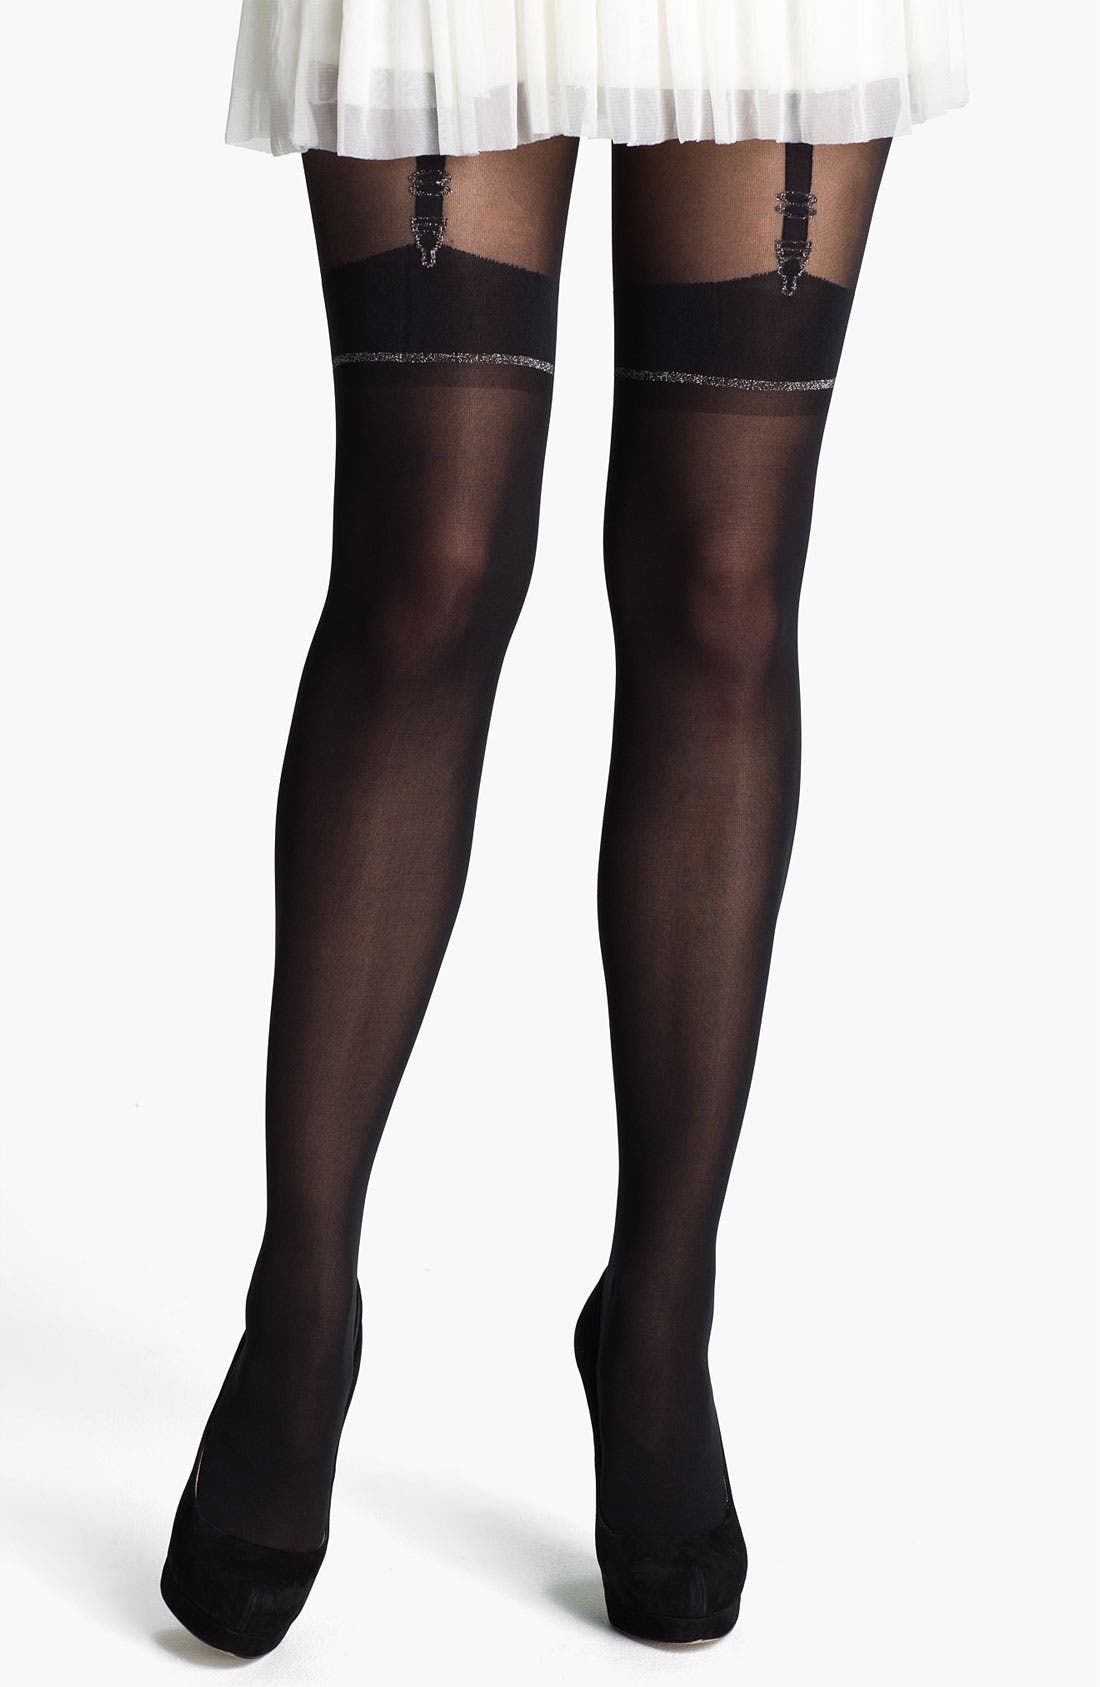 Alternate Image 1 Selected - Pretty Polly 'Stunning' Mock Suspender Tights